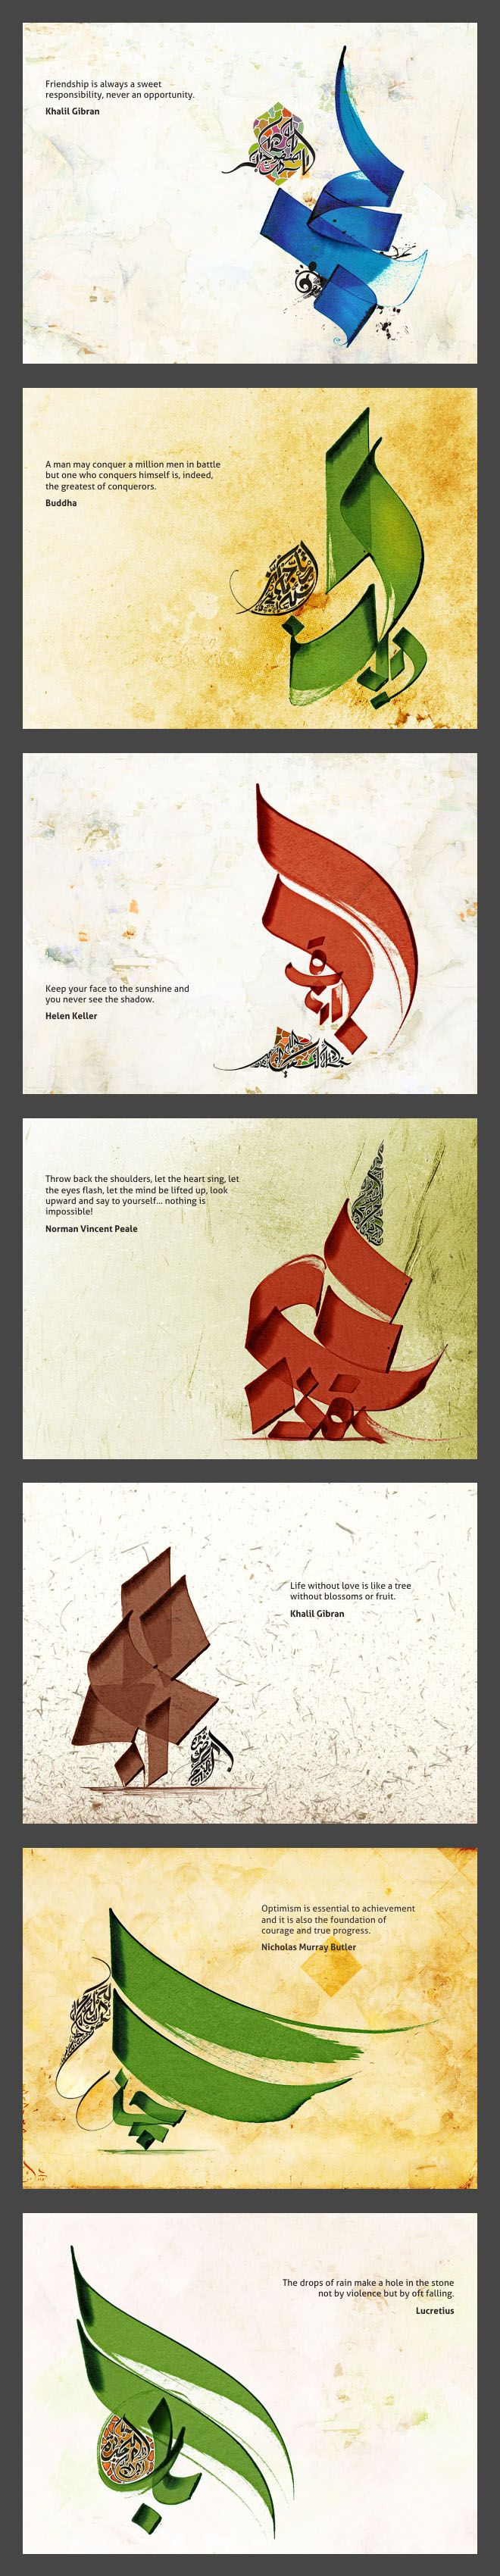 Arabic calligraphy project by ~khawarbilal on deviantART